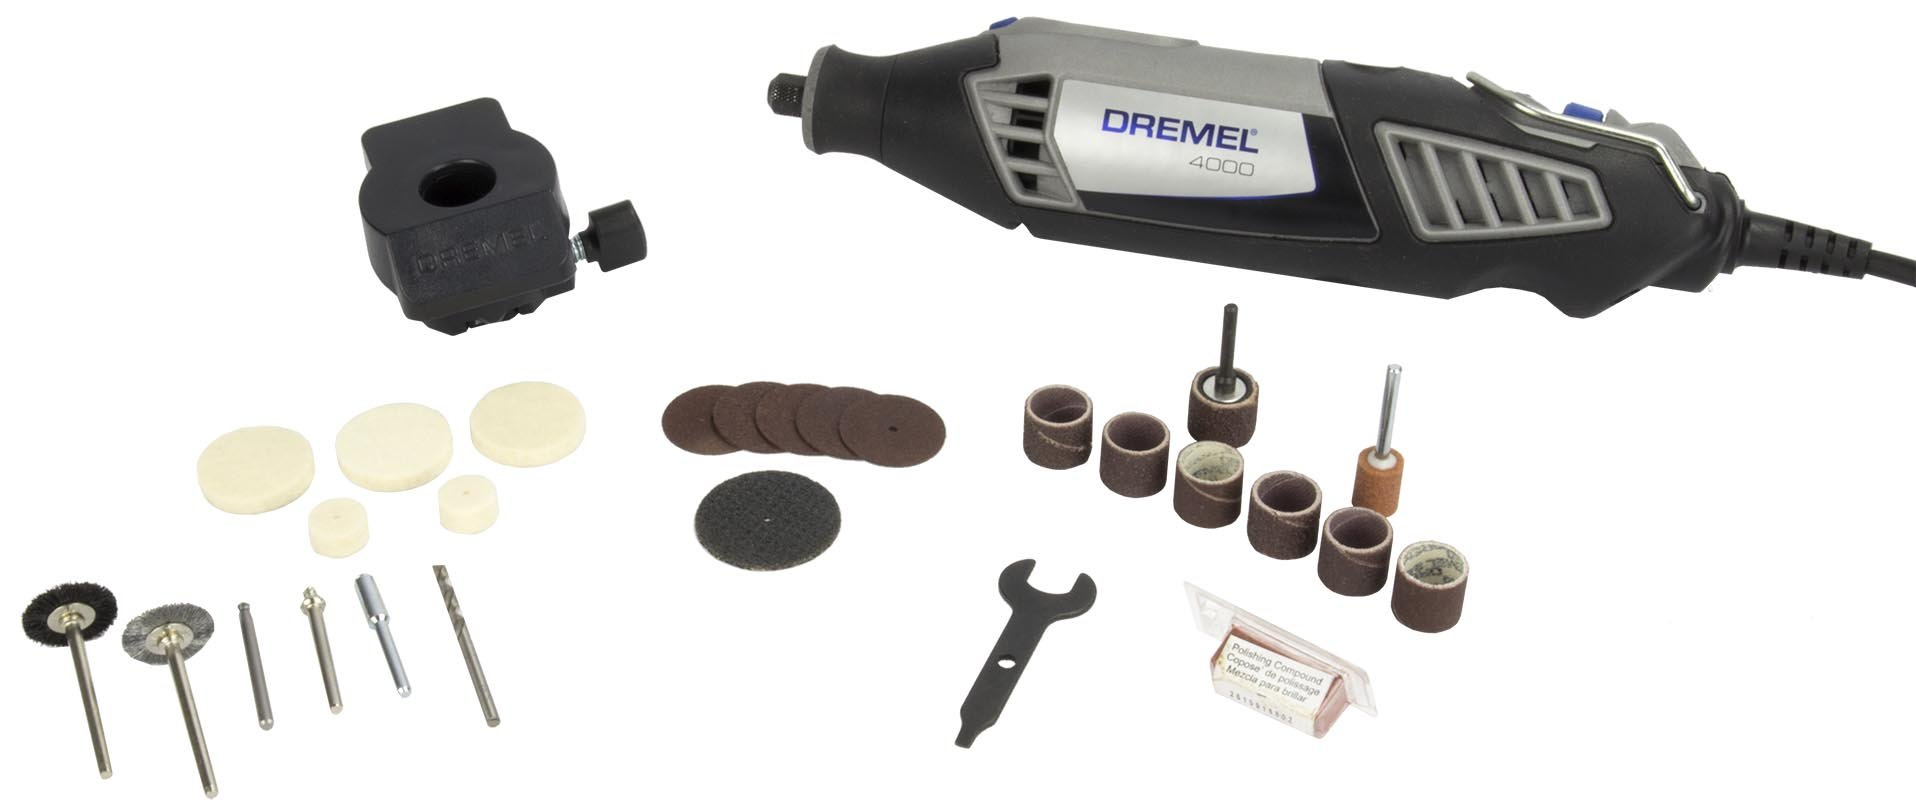 Dremel 4000 Series 28 Piece 1.6A Corded Electric Variable Speed Rotary Tool Kit (Certified Refurbished)